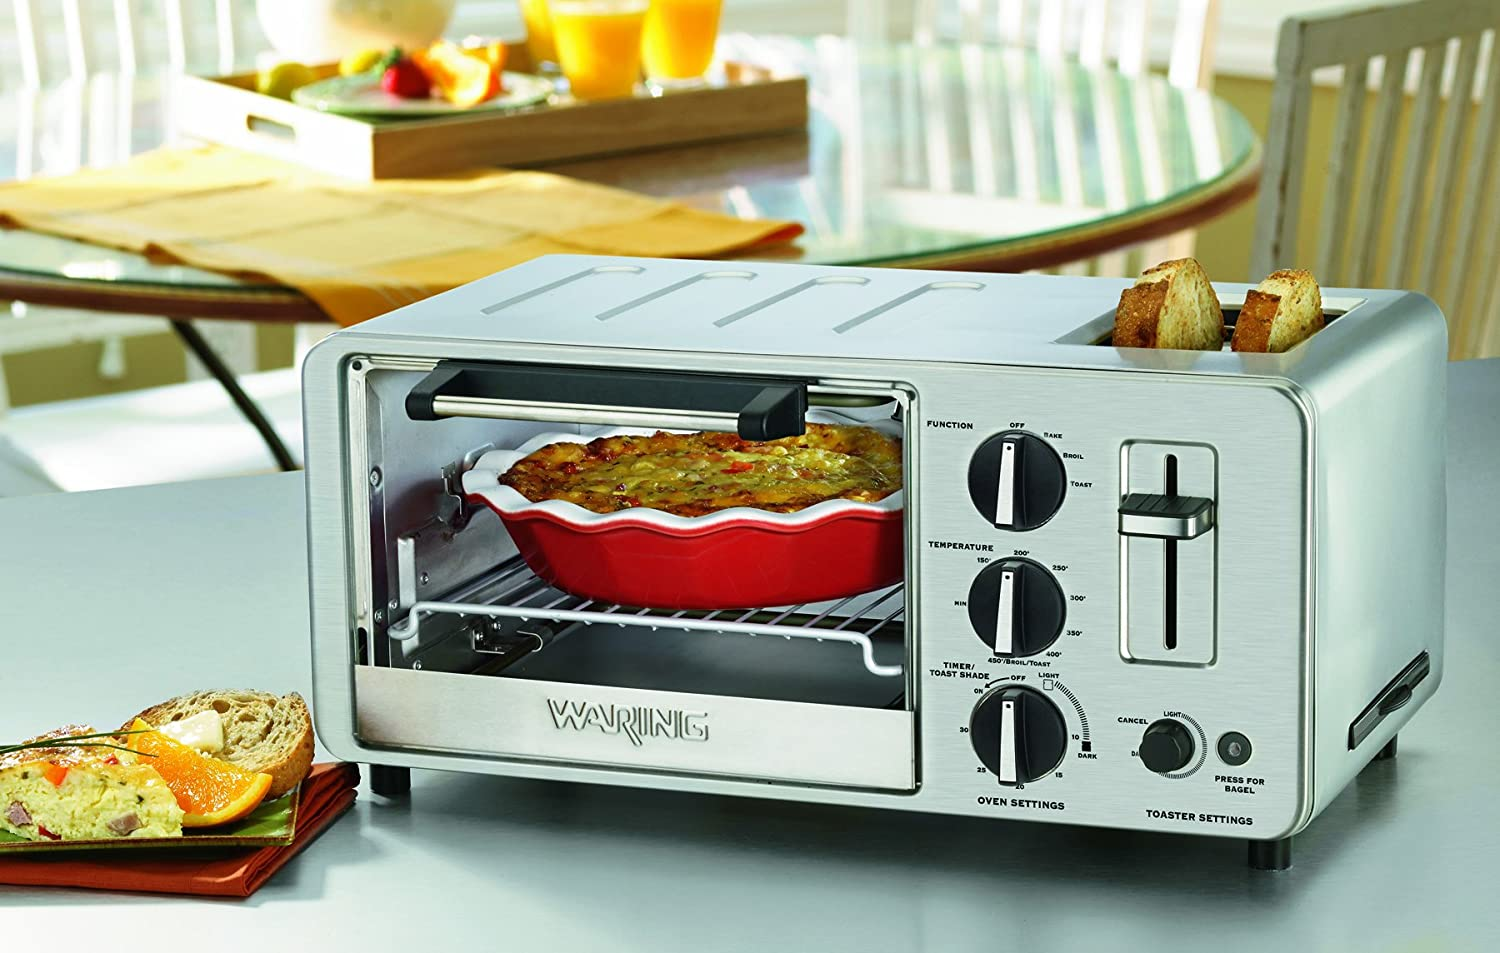 Amazon.com: Waring WTO150 4-Slice Toaster Oven with Built-In 2-Slice ...